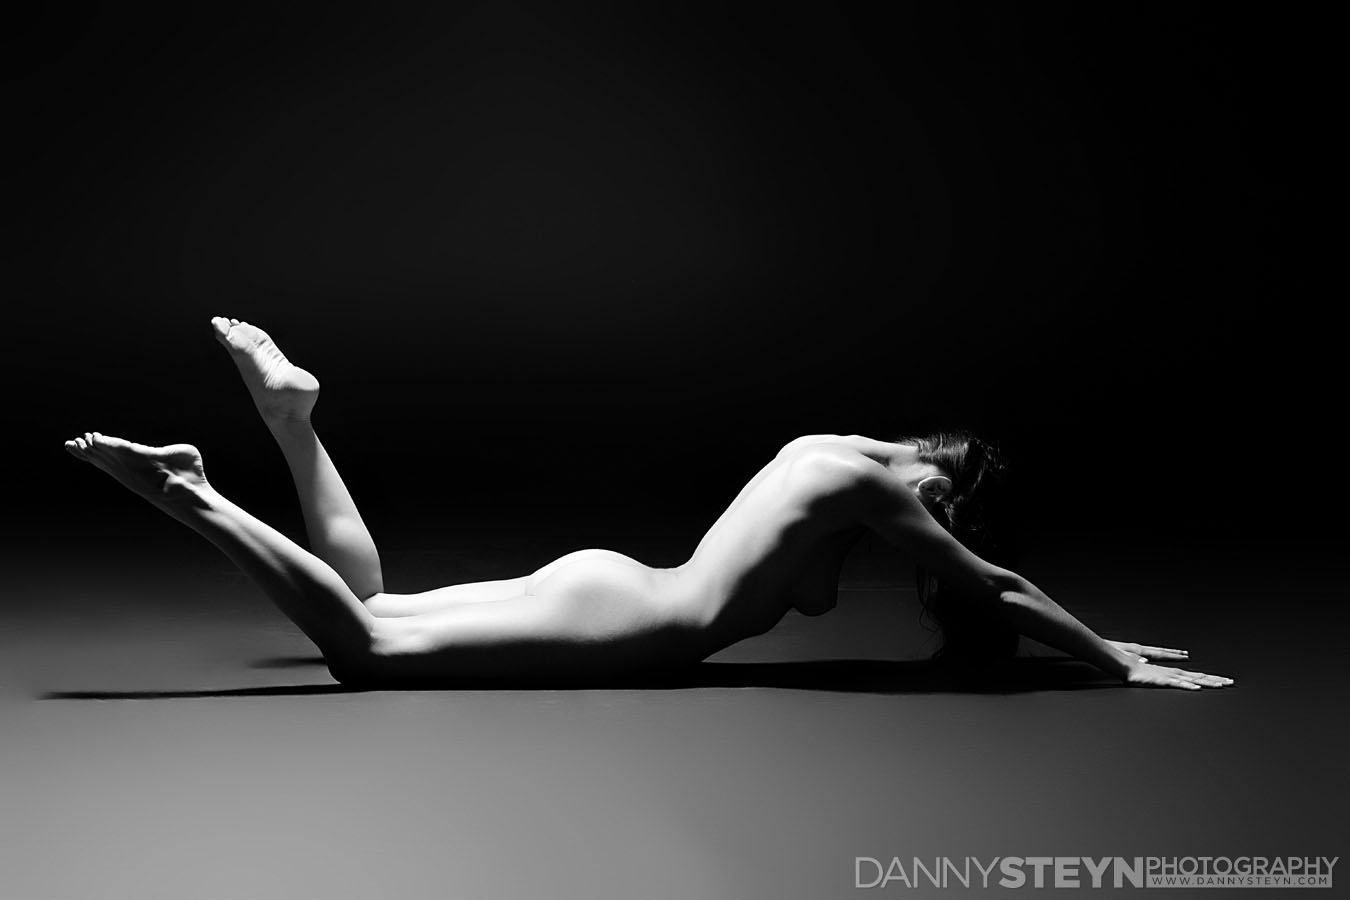 artistic nude photography ft lauderdale